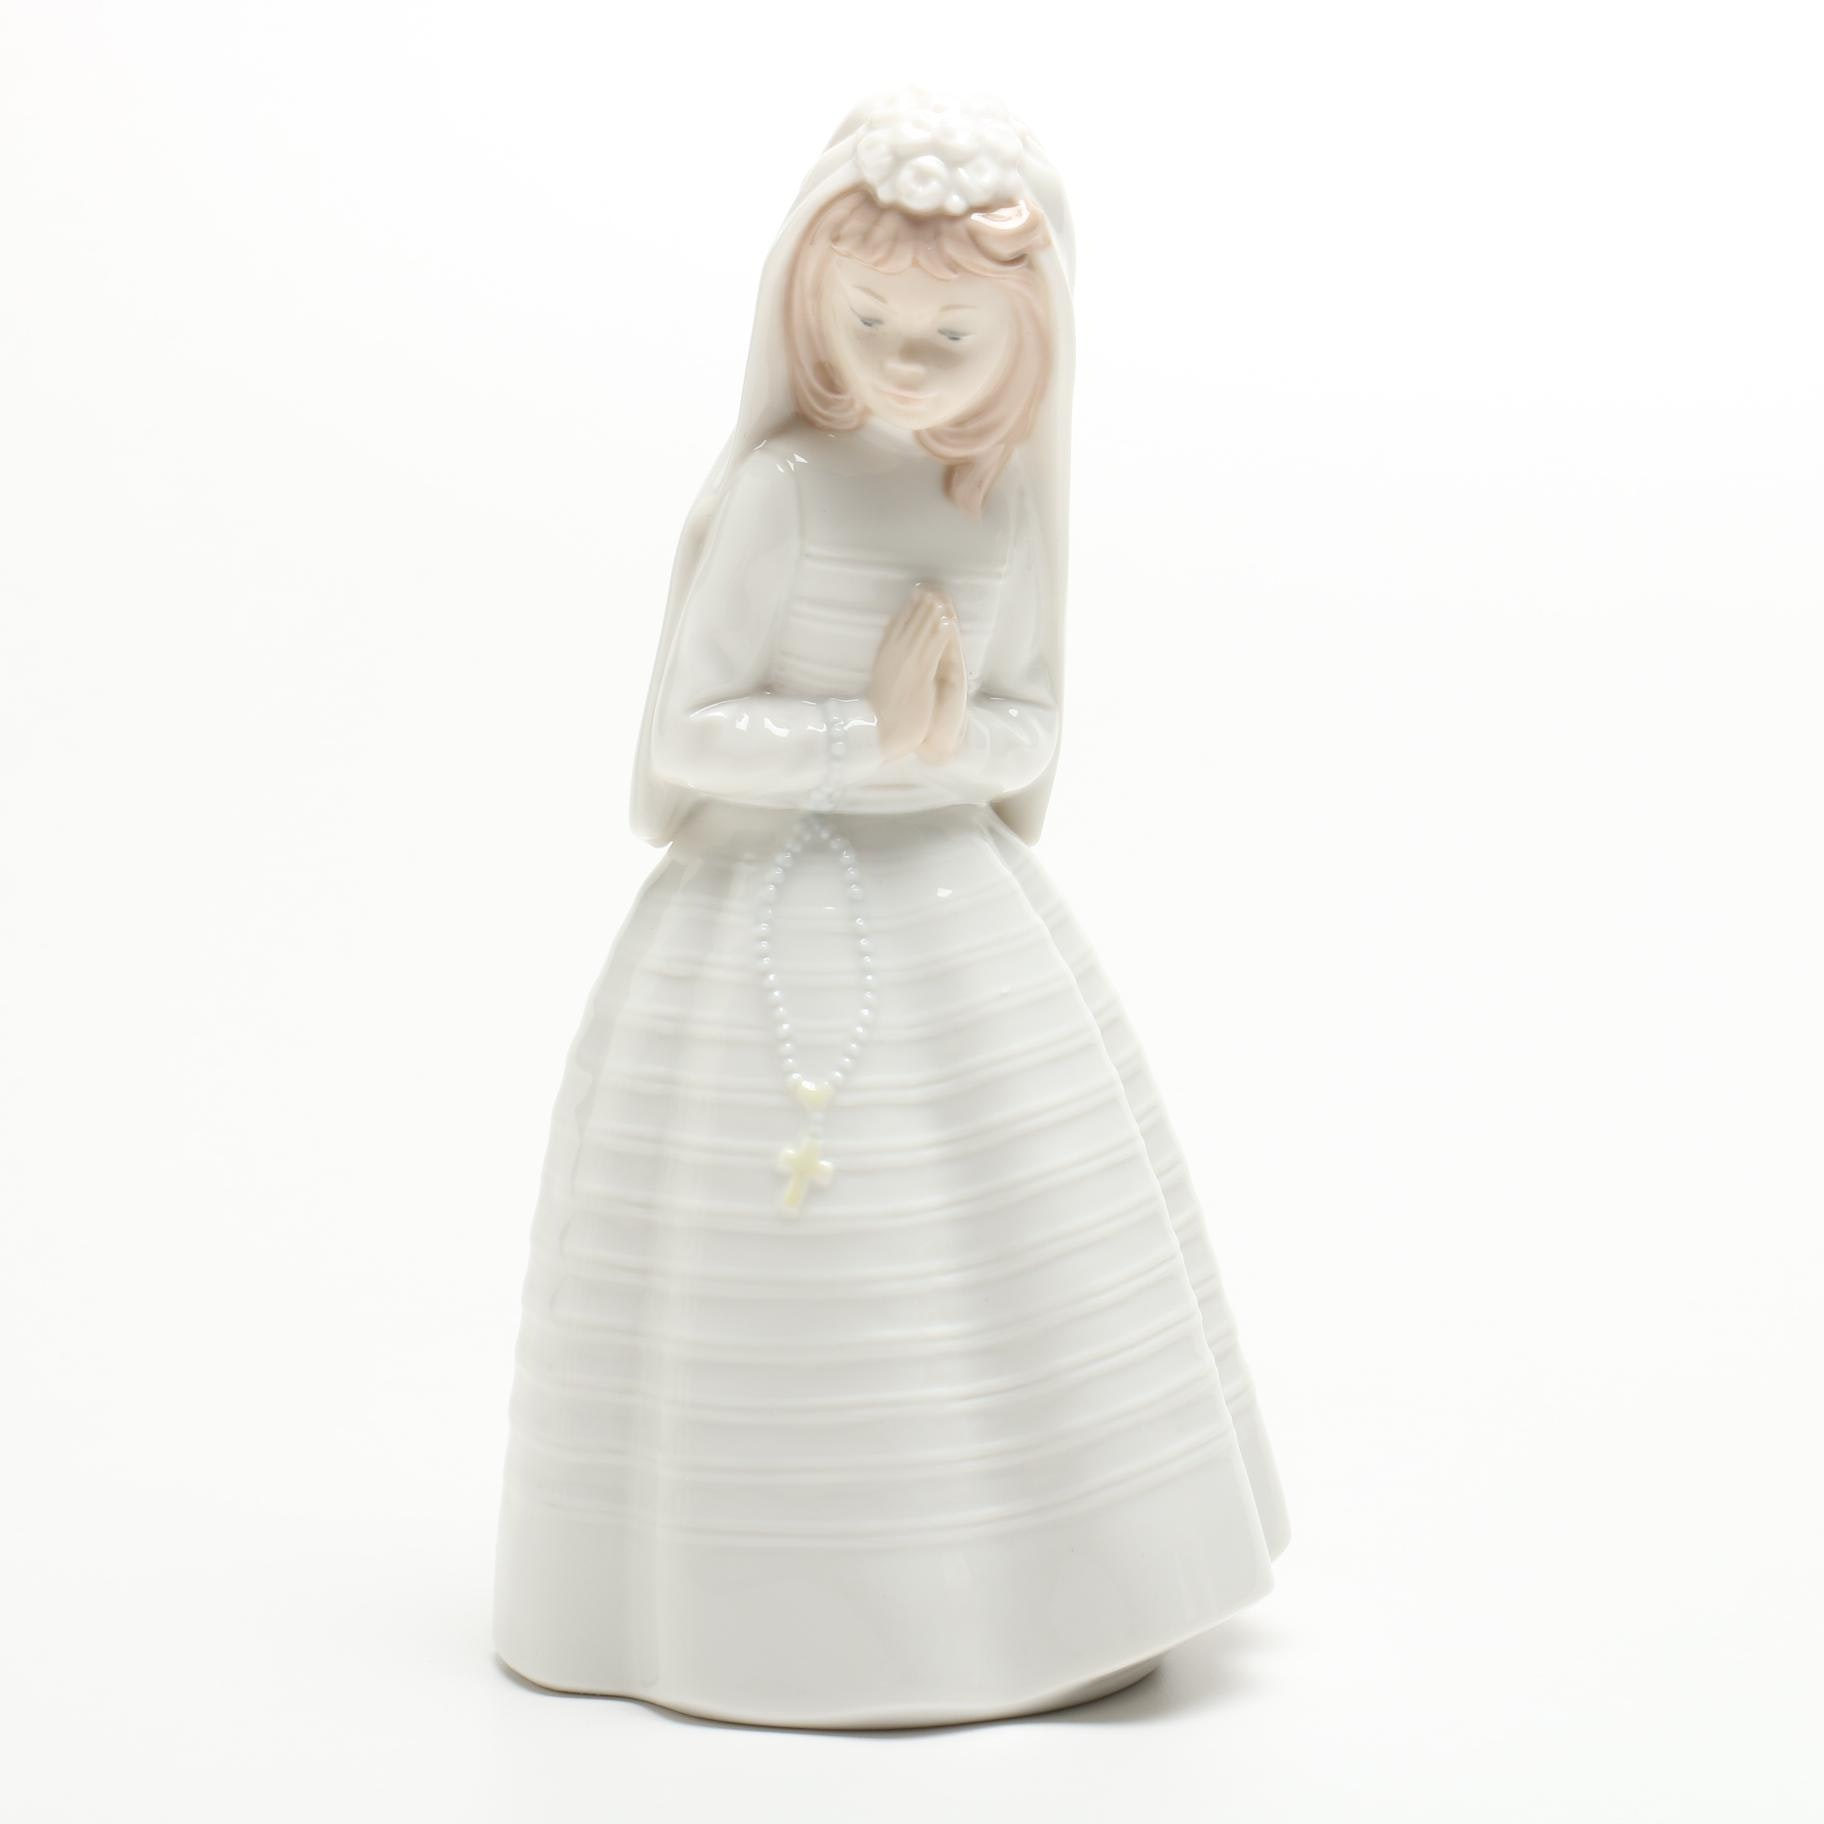 Nao by Lladró First Communion Porcelain Figurine